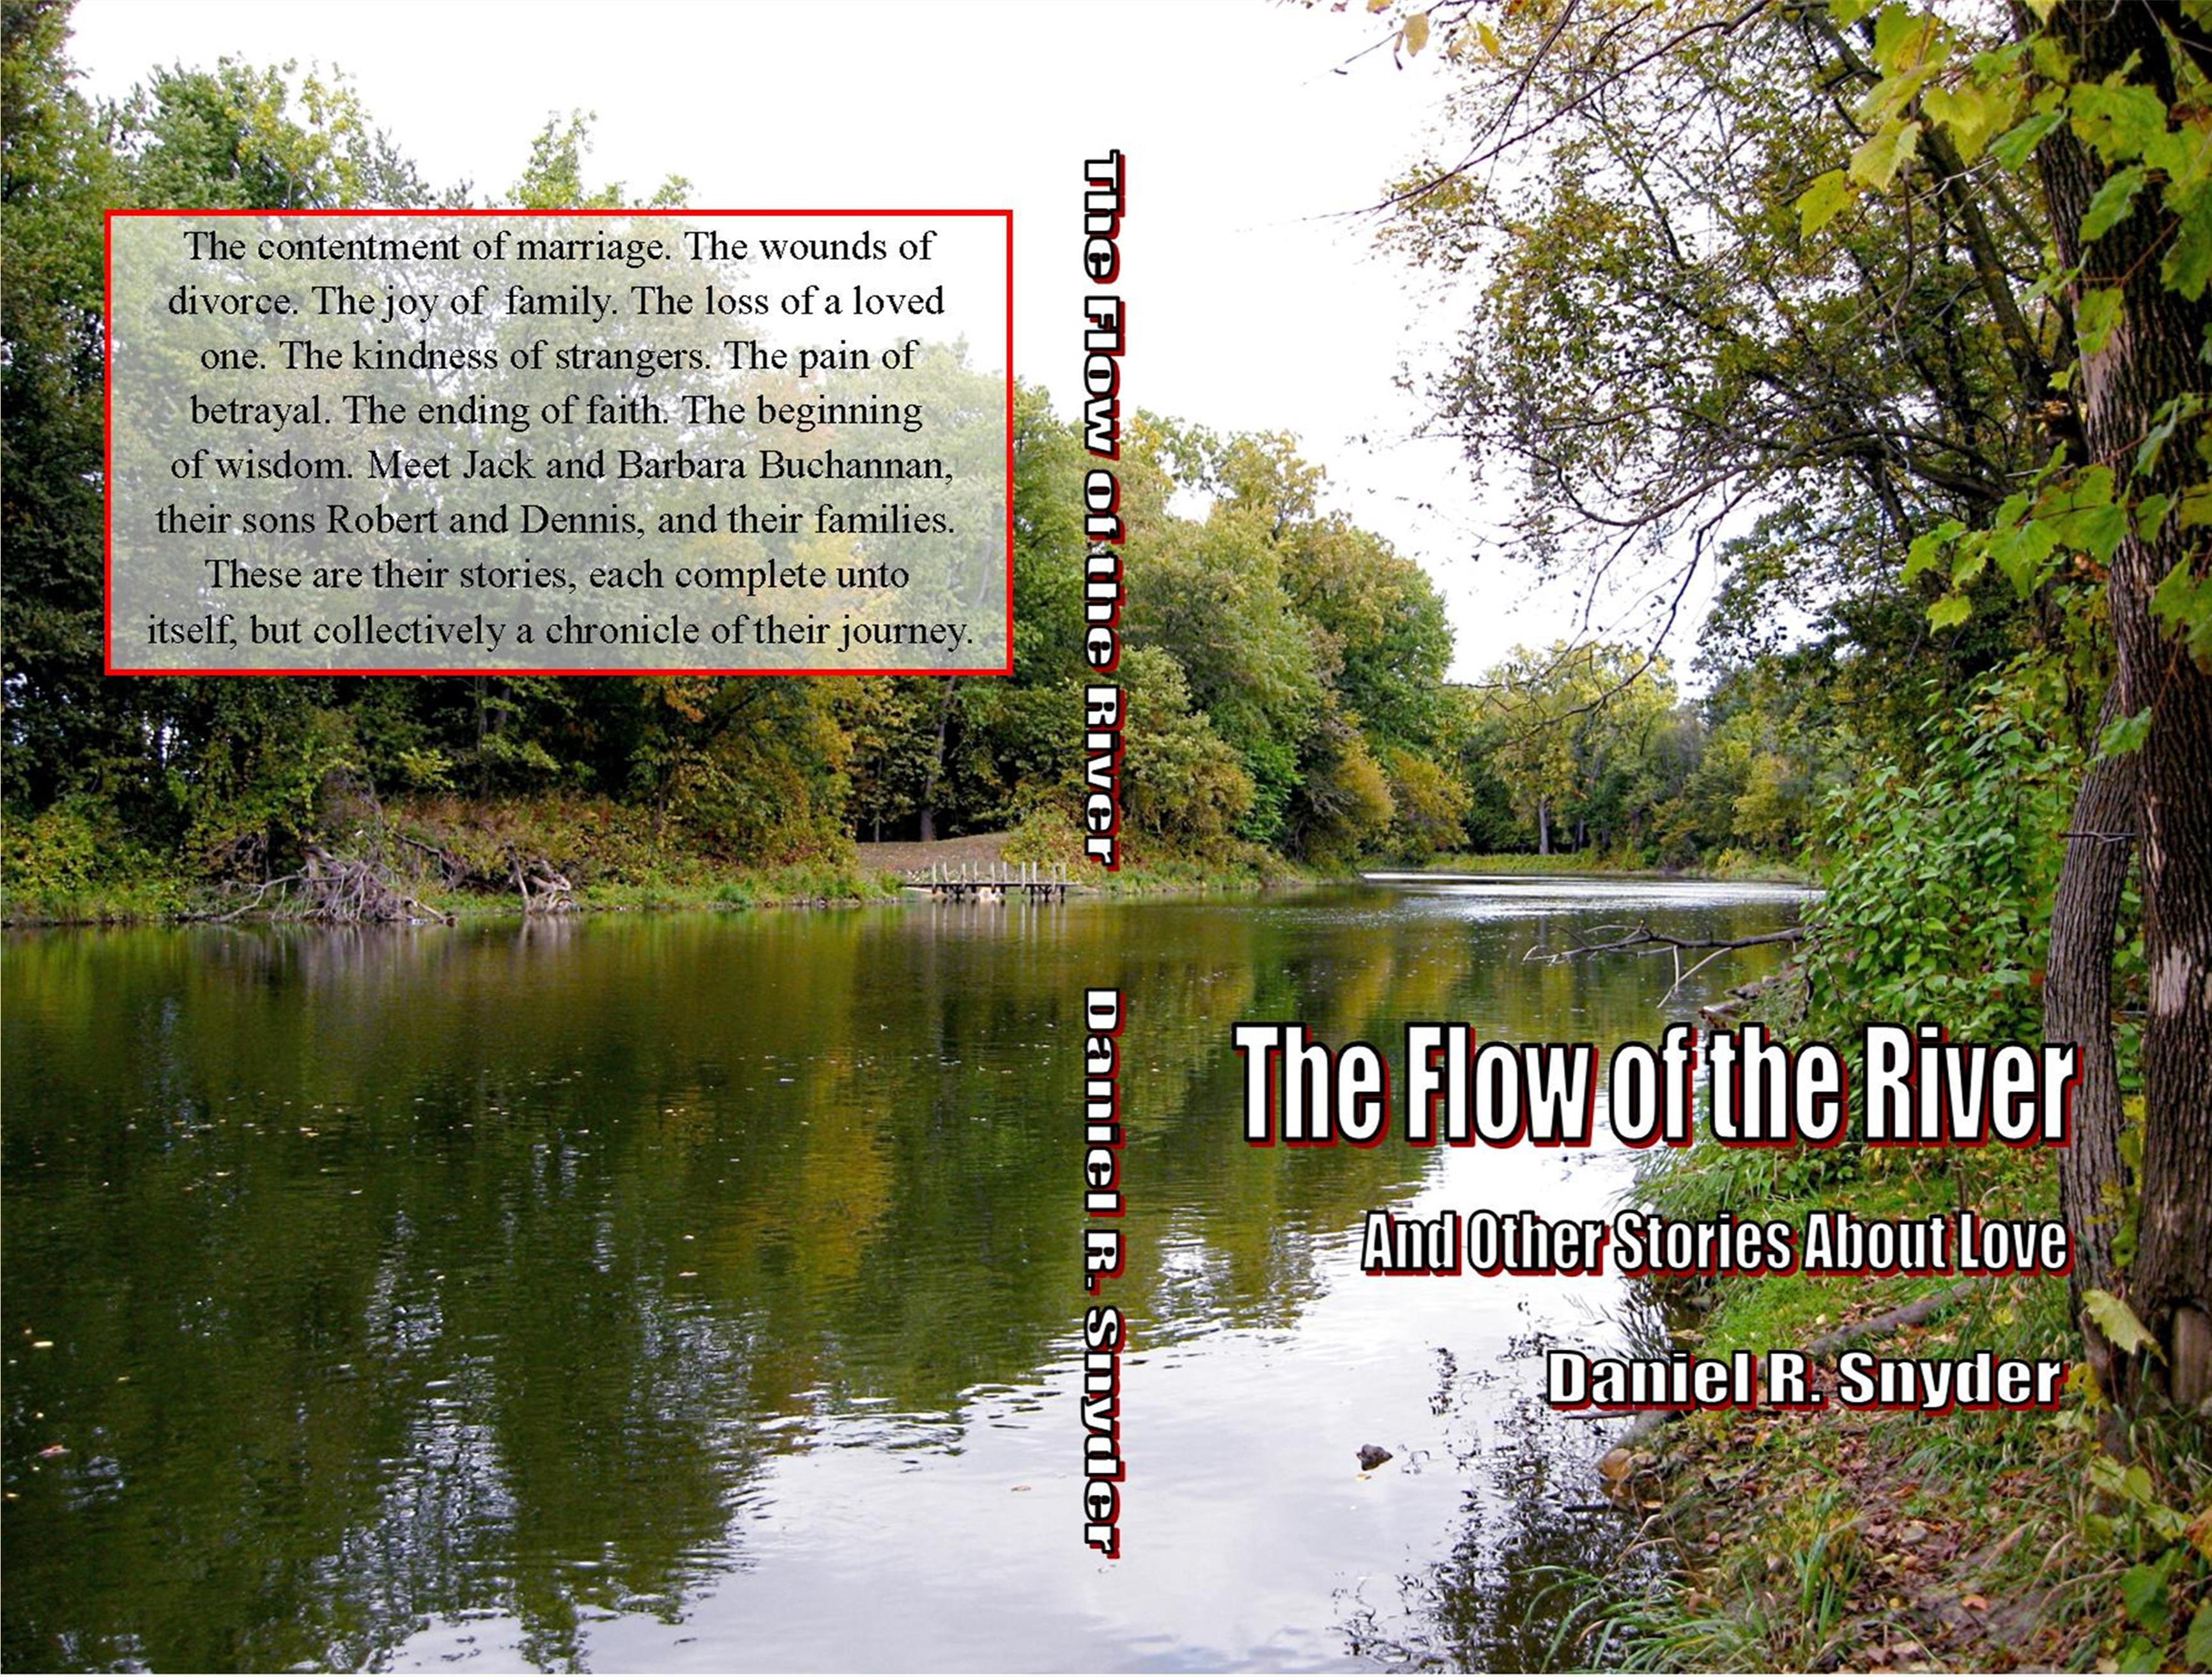 The Flow of the River cover image